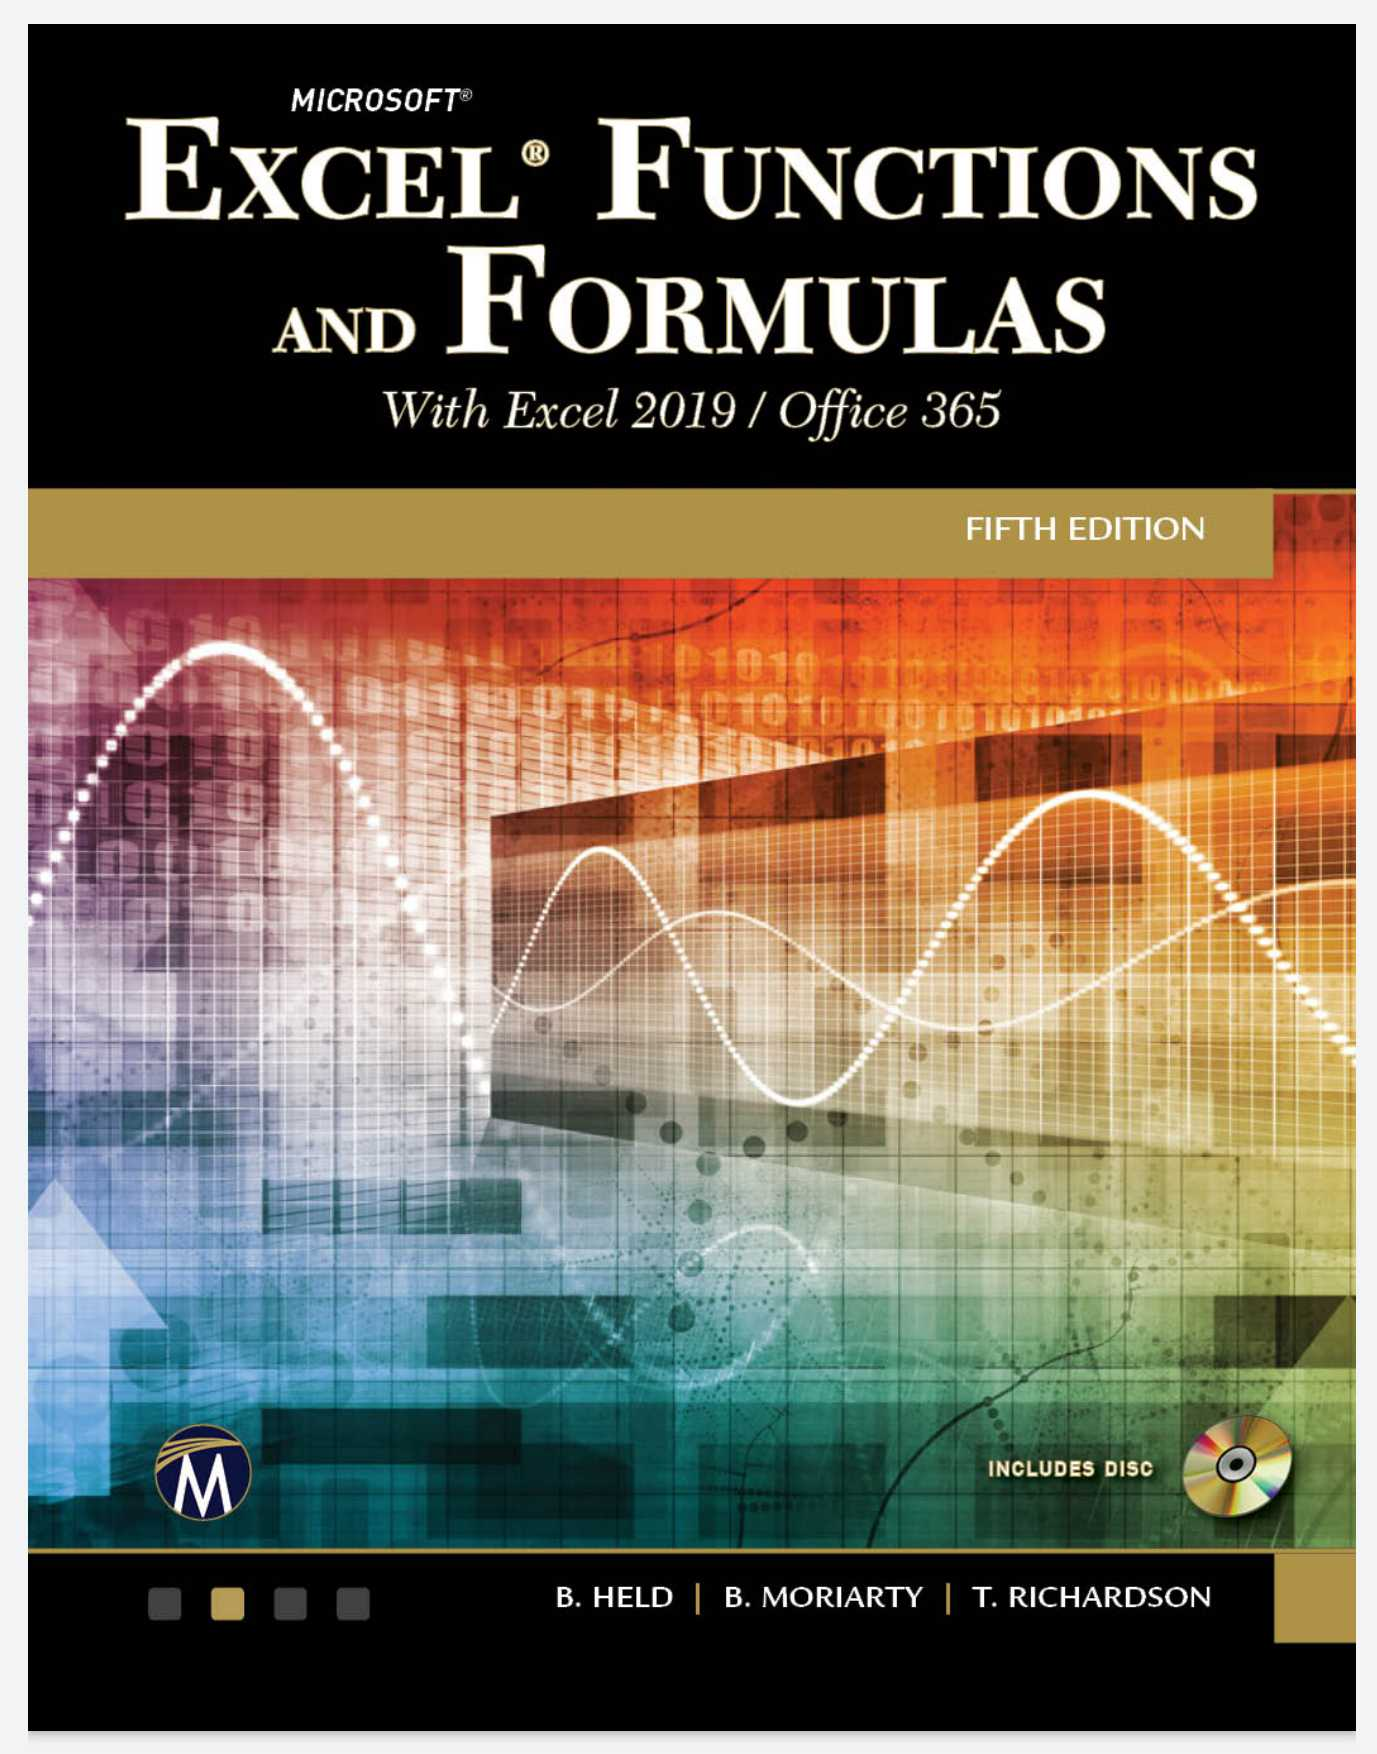 Microsoft Excel Functions and Formulas, 5th Edition